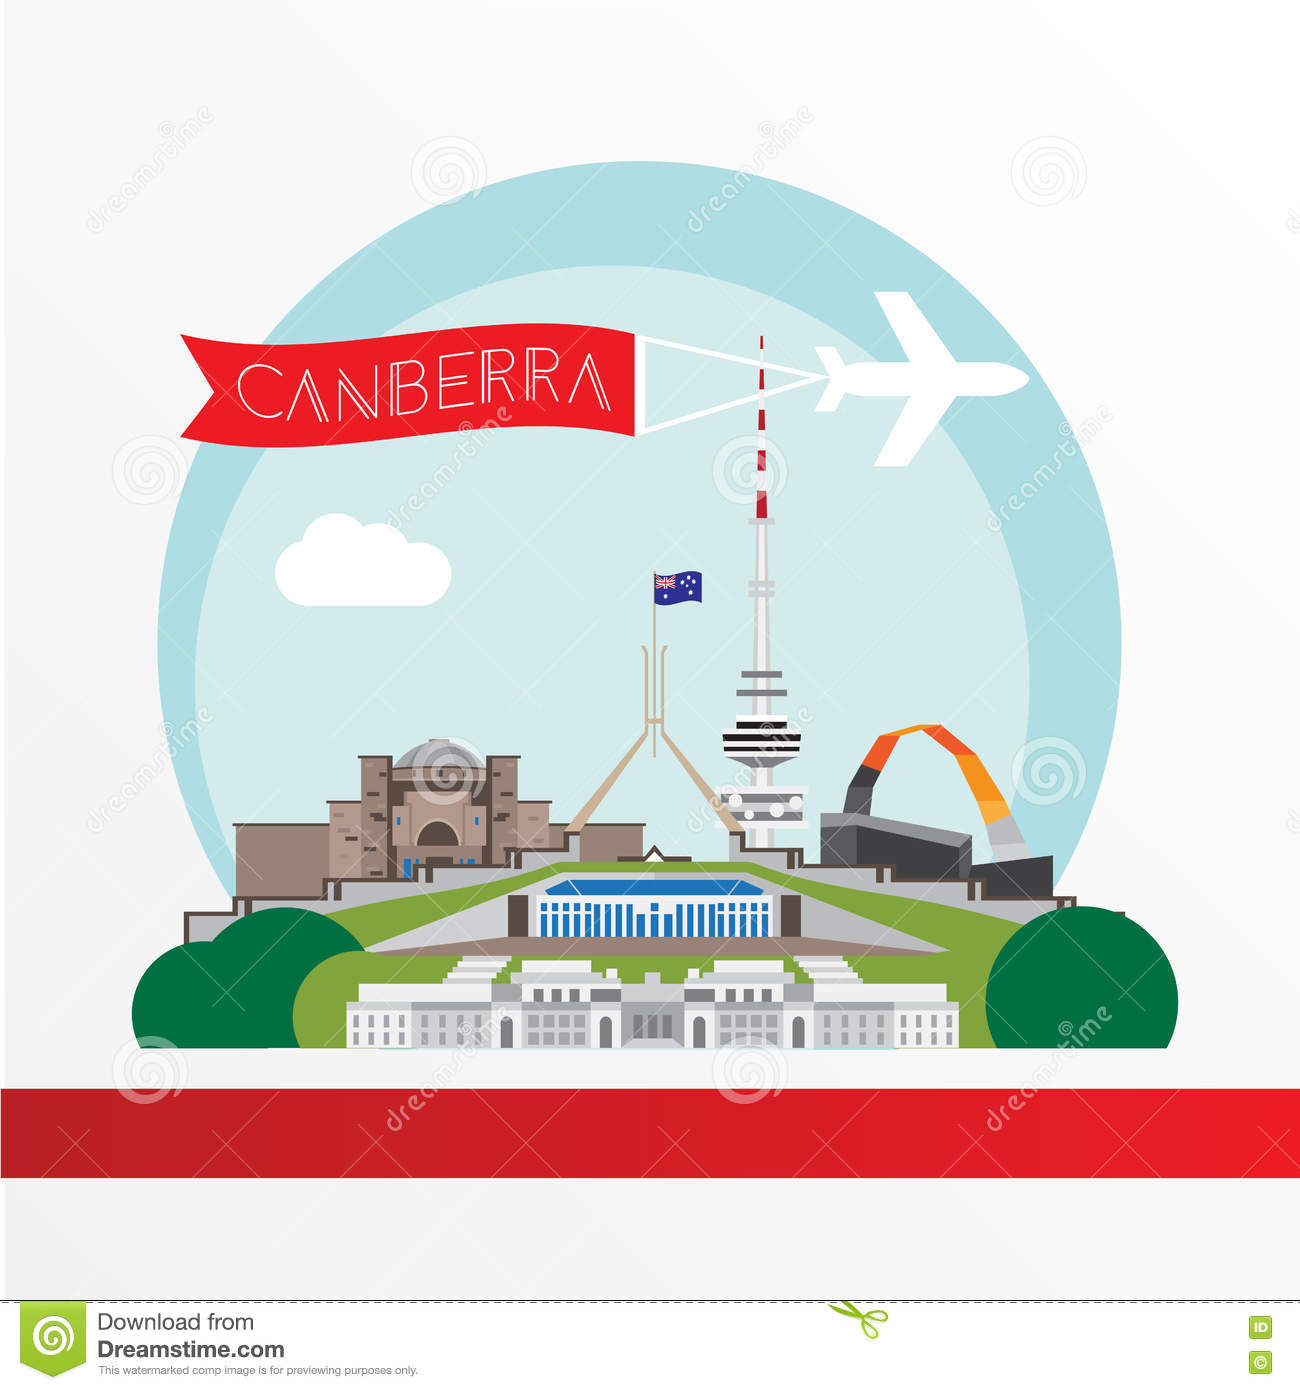 Canberra detailed silhouette. Trendy vector illustration, flat style. Stylish colorful landmarks.